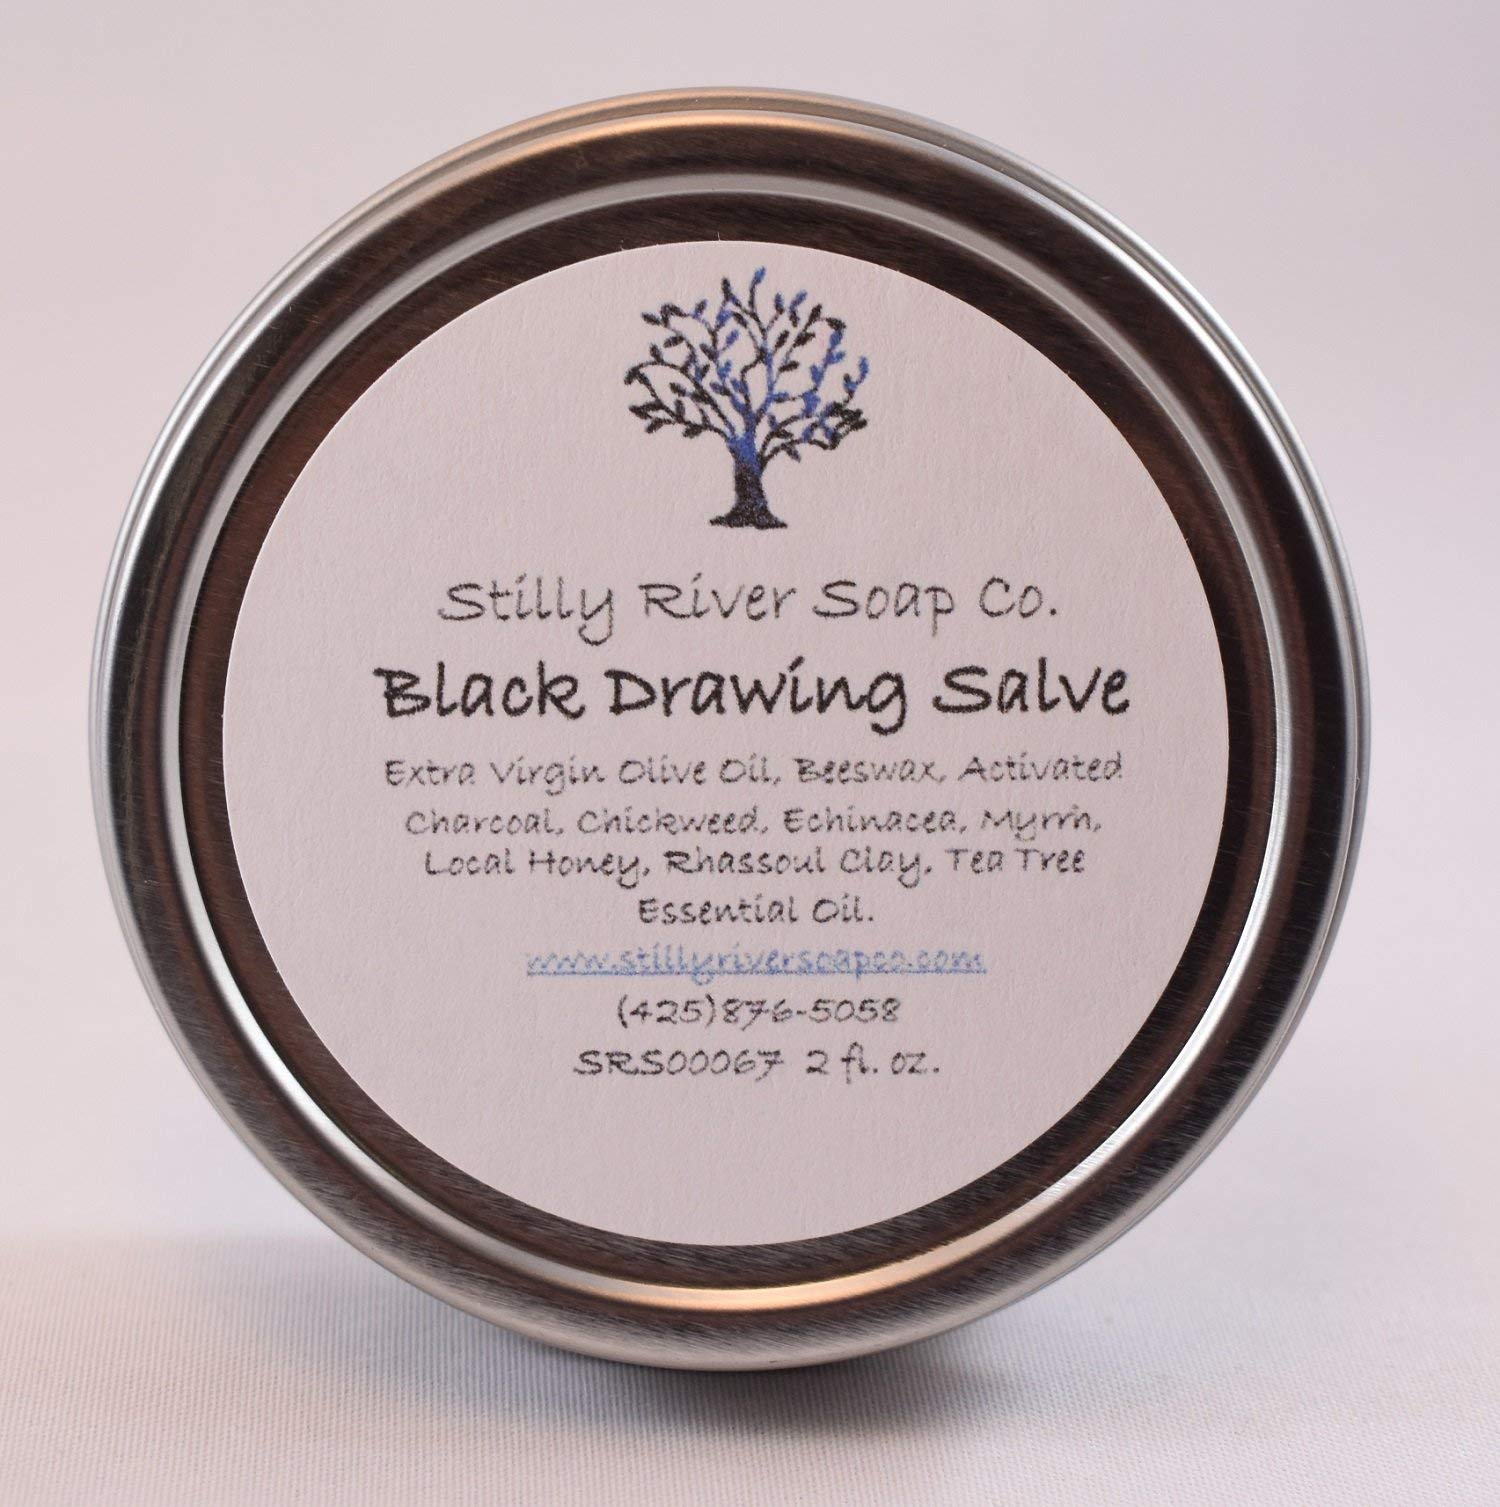 Black Drawing Salve by Stilly River Soap Co. Natural Products